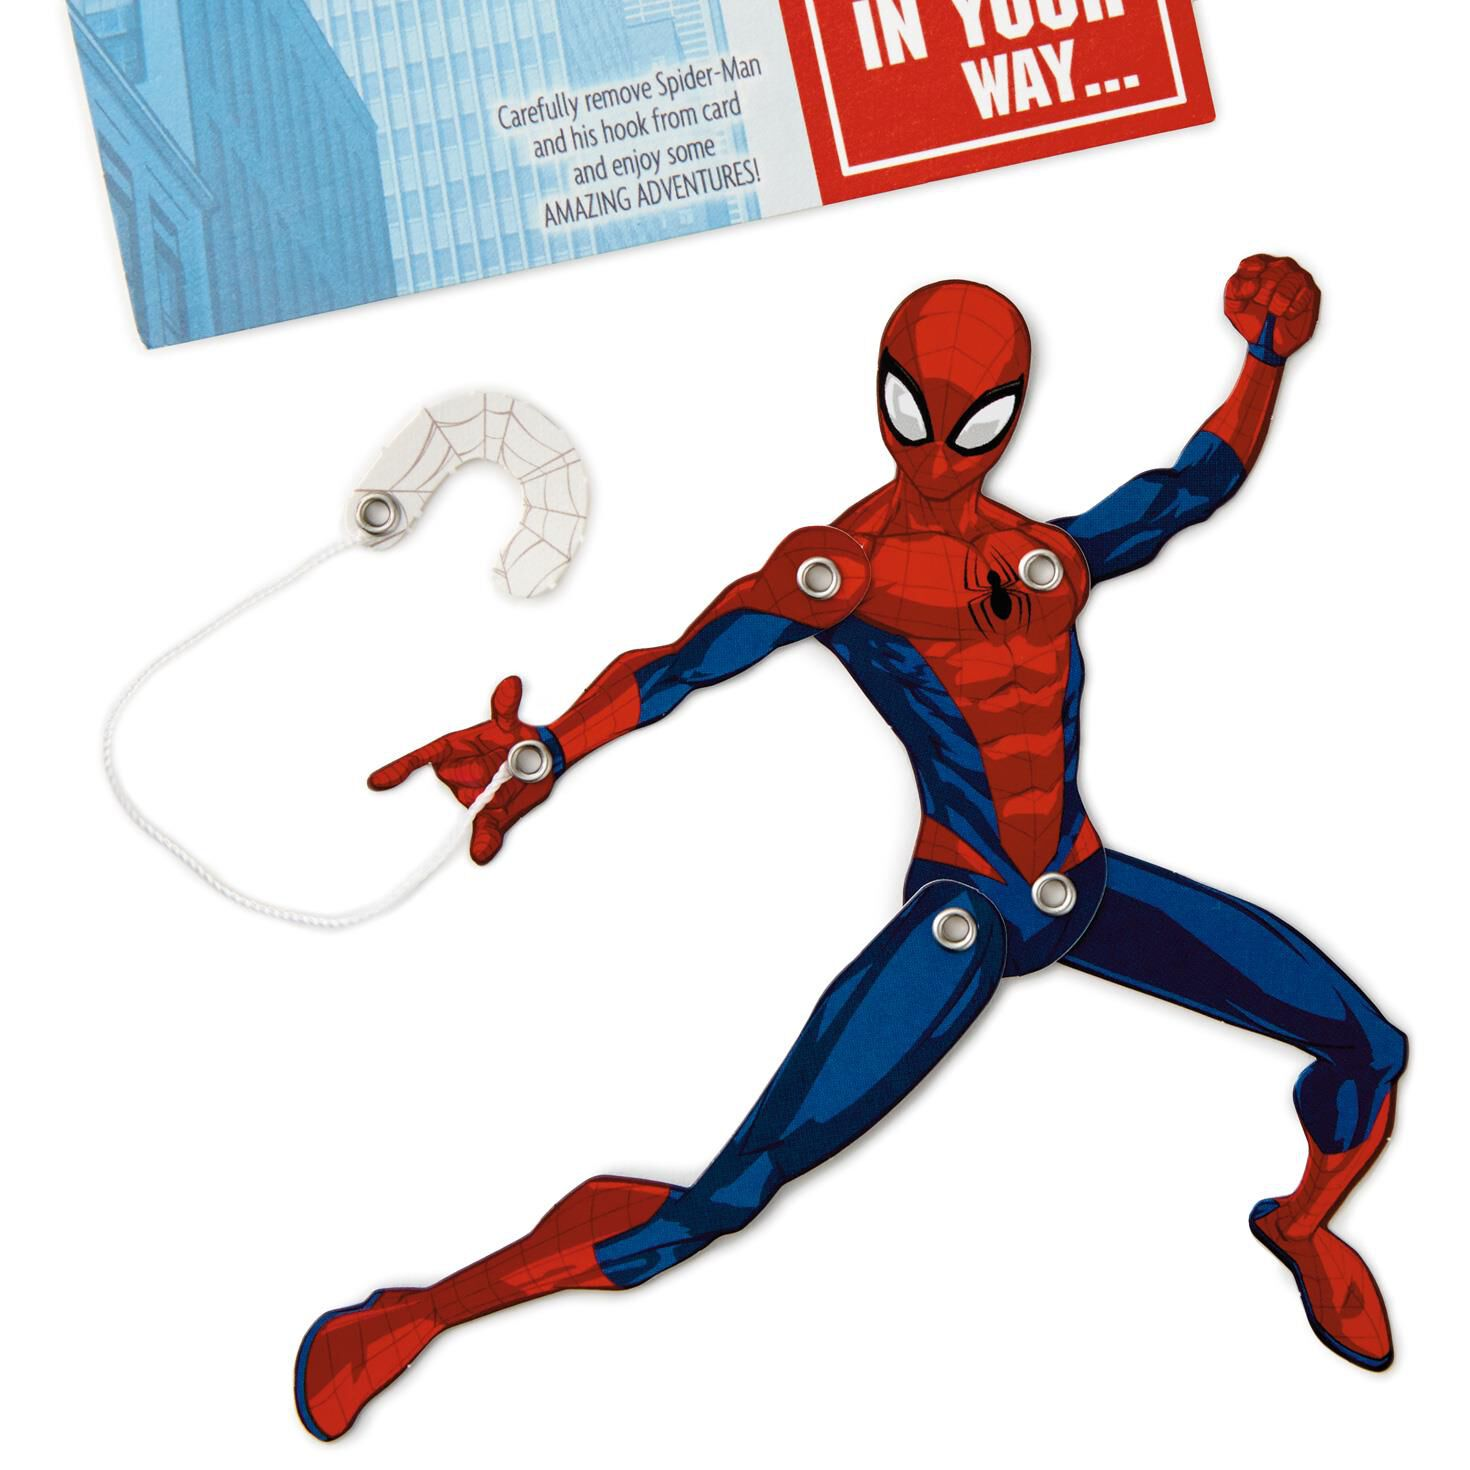 spider man pop up musical birthday card for grandson greeting .